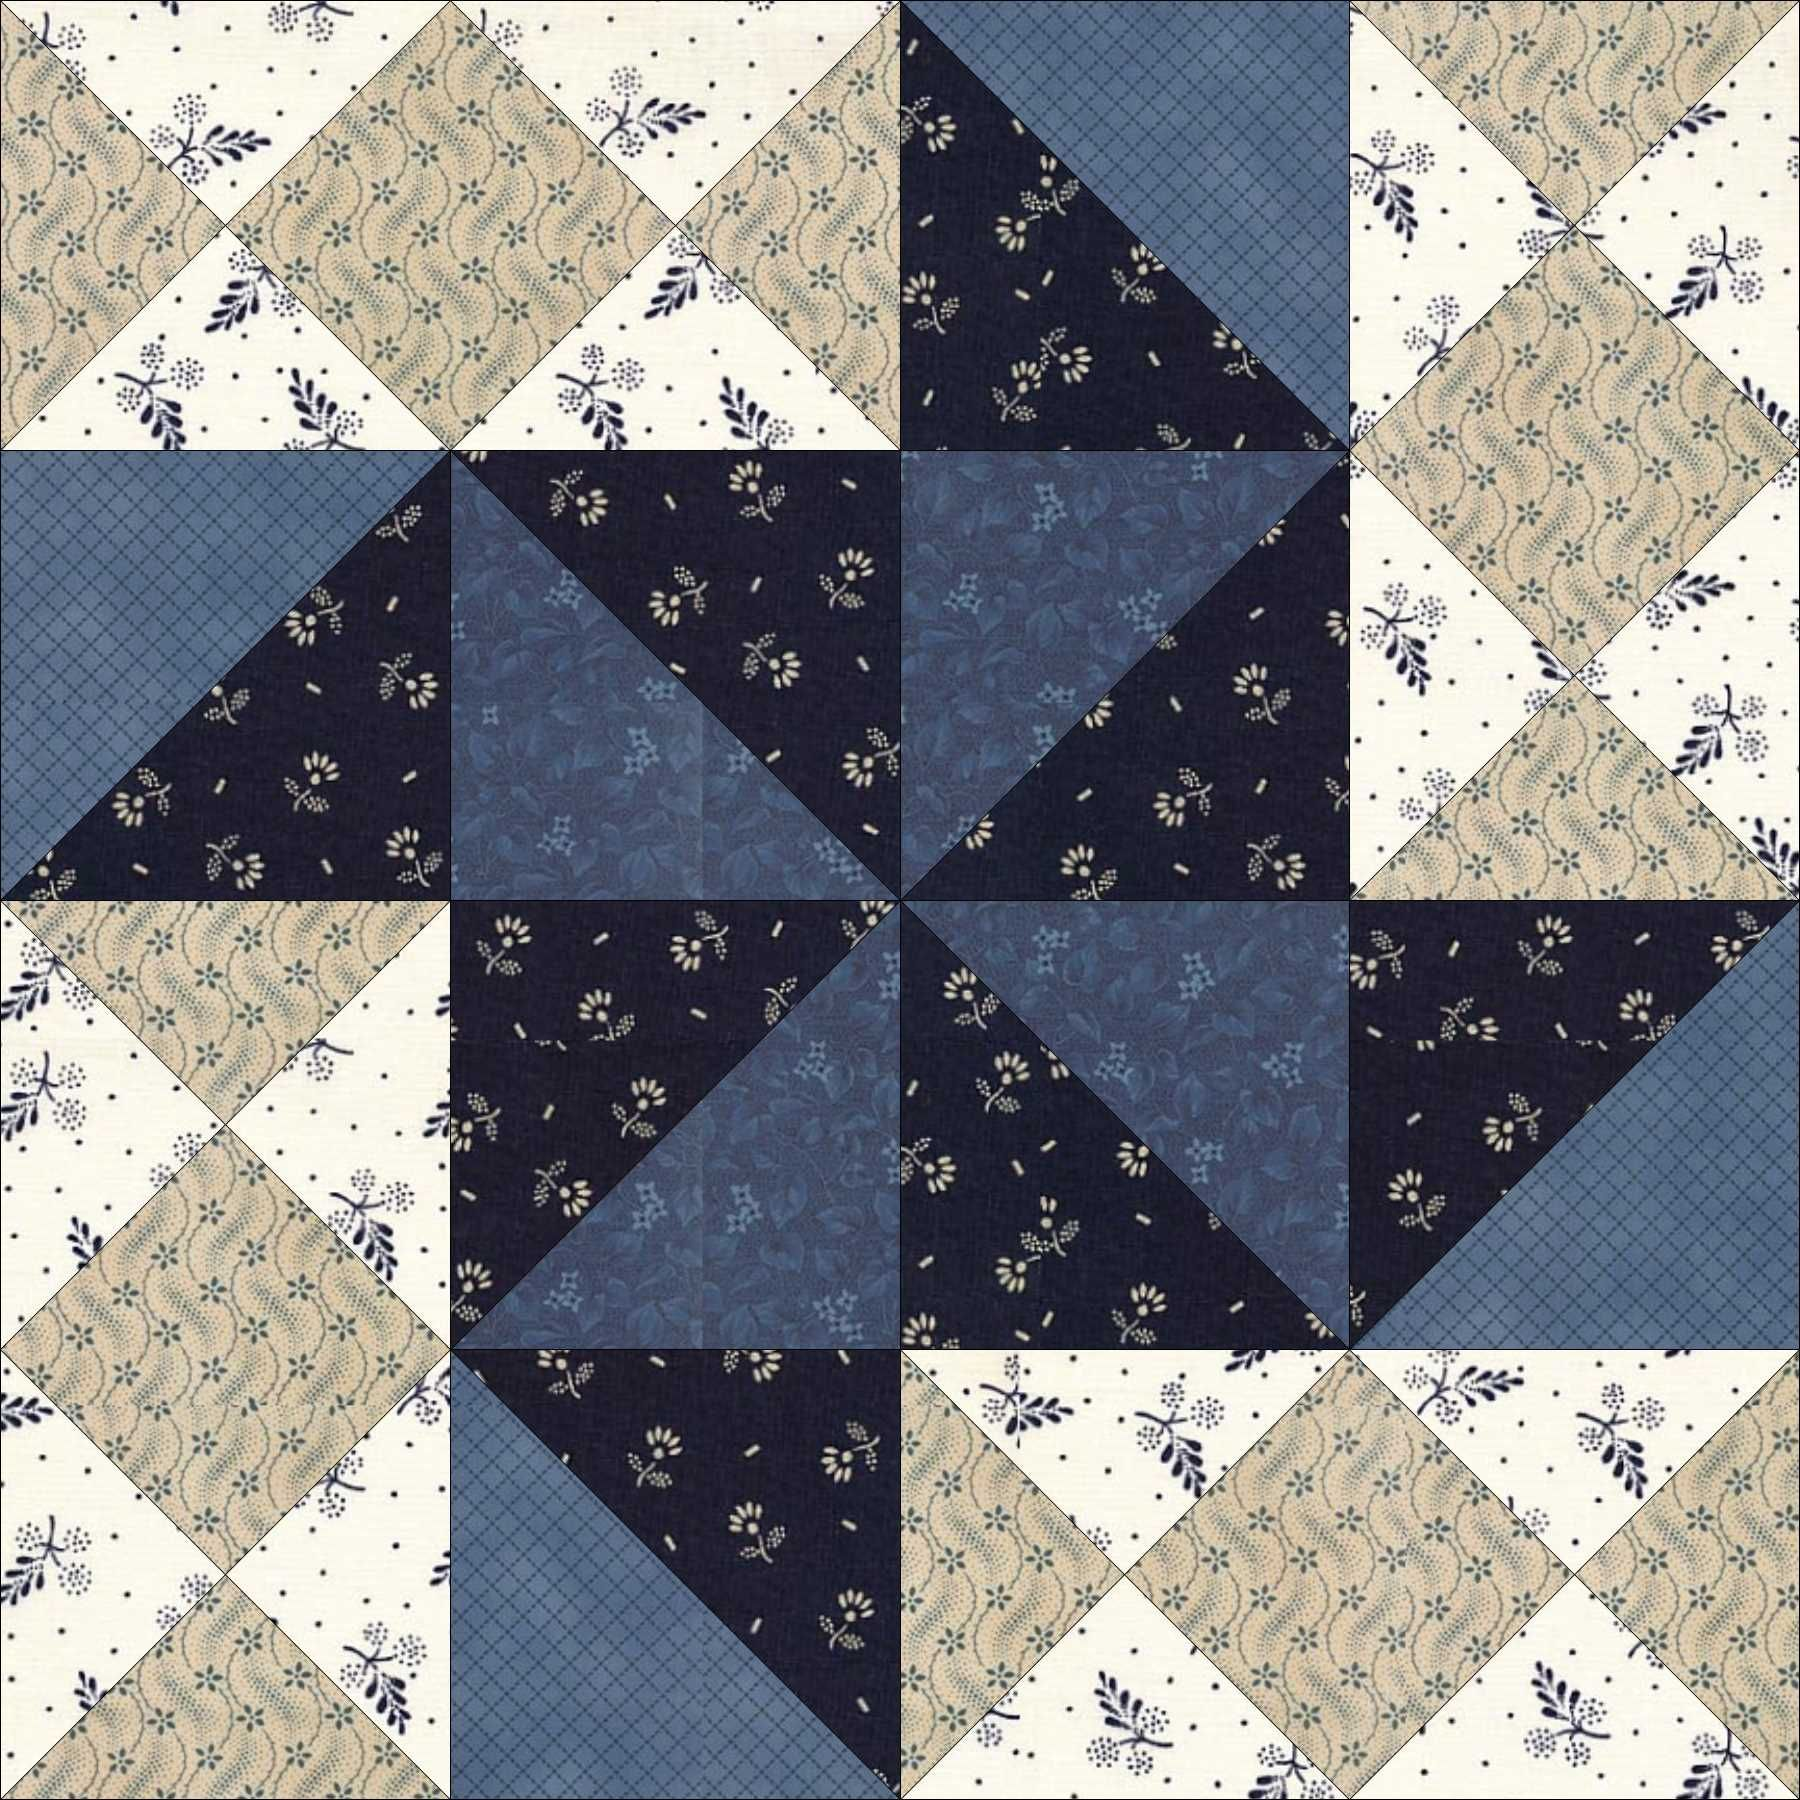 April 6 Flying Fist.This block is from the pattern library ...